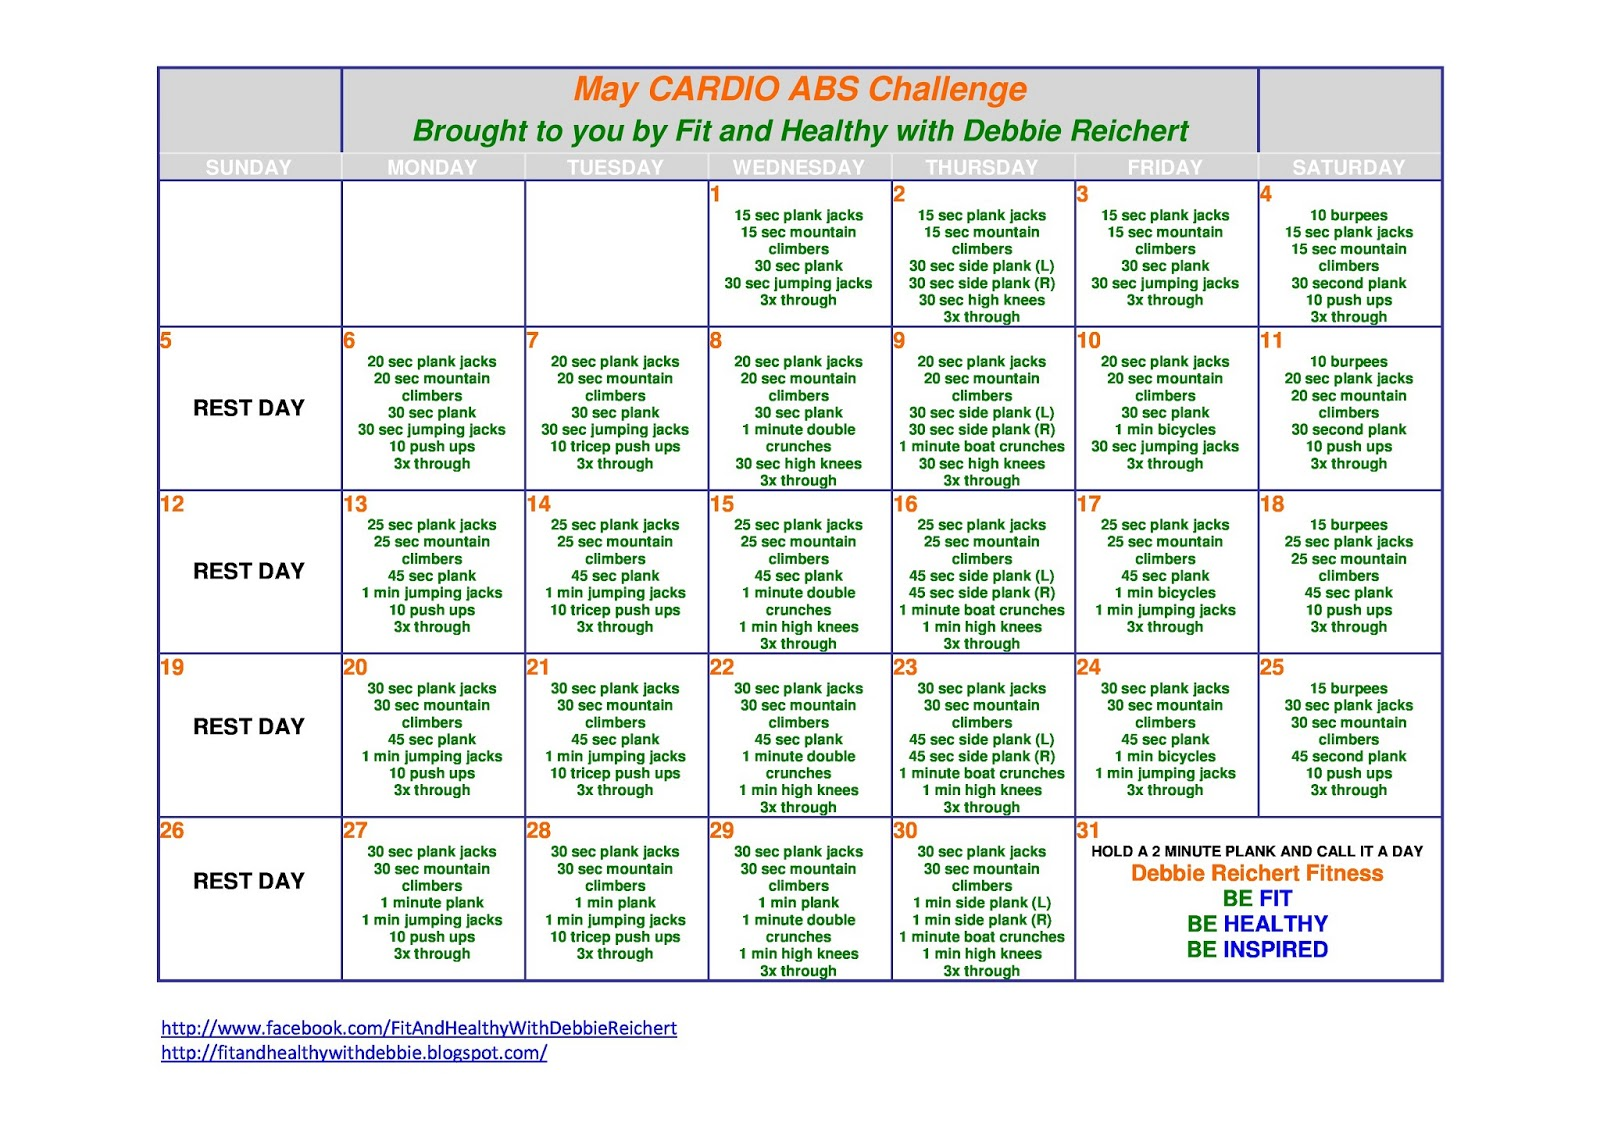 Mays Cardio Abs Challenge